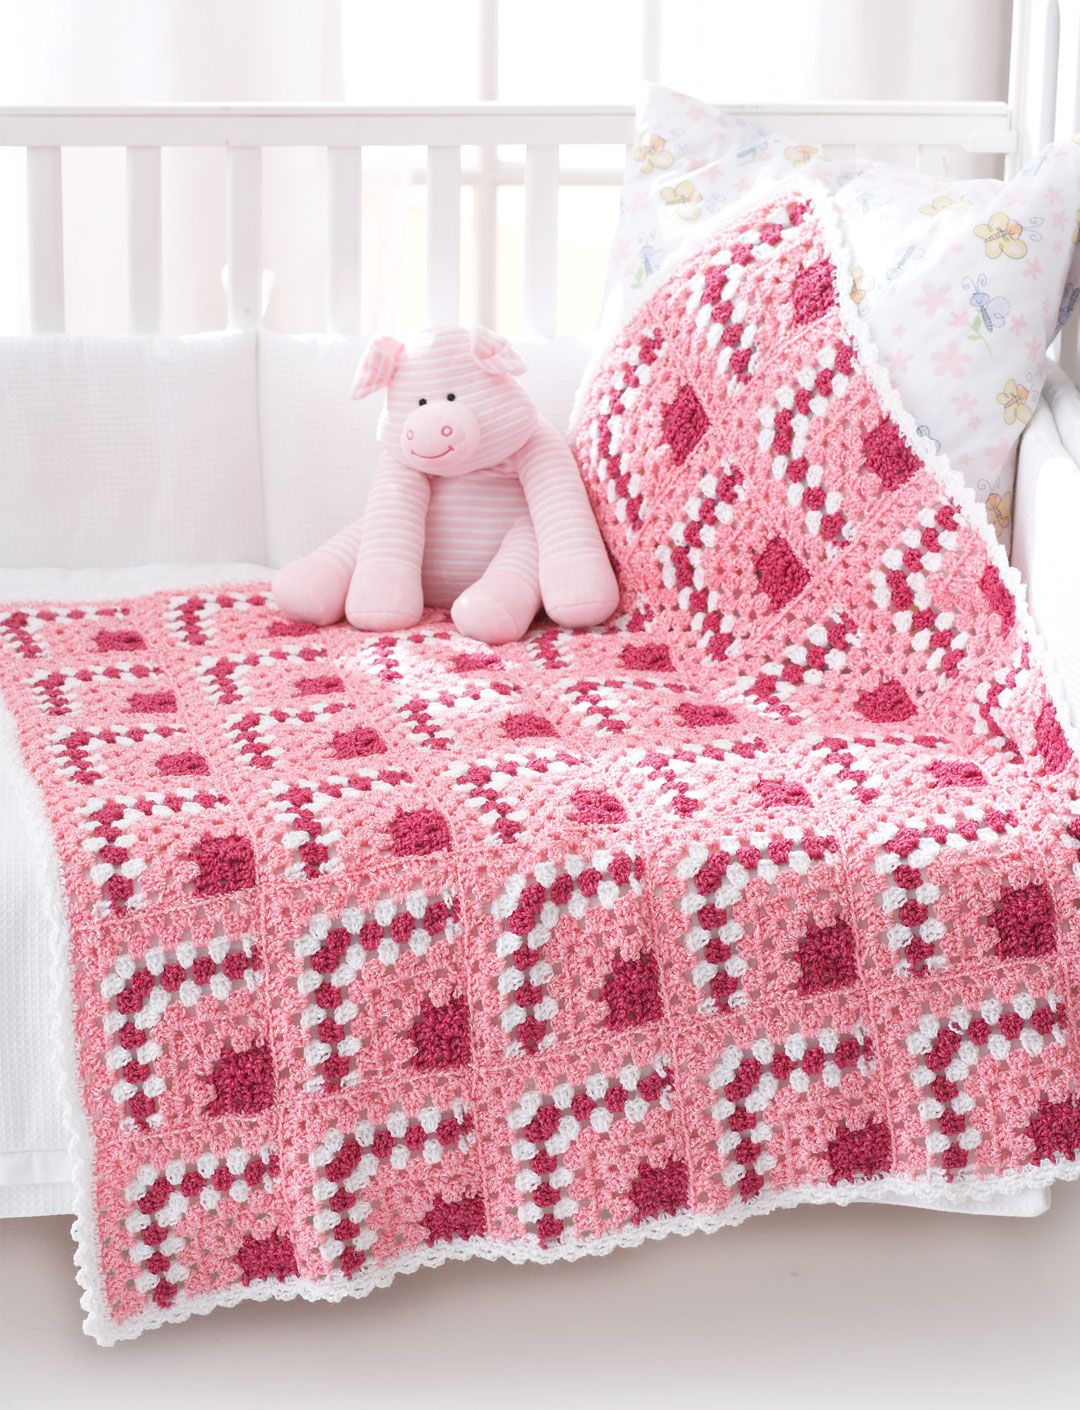 Bernat Baby Blanket Crochet Patterns | Puzzle Blocks Baby Blanket ...